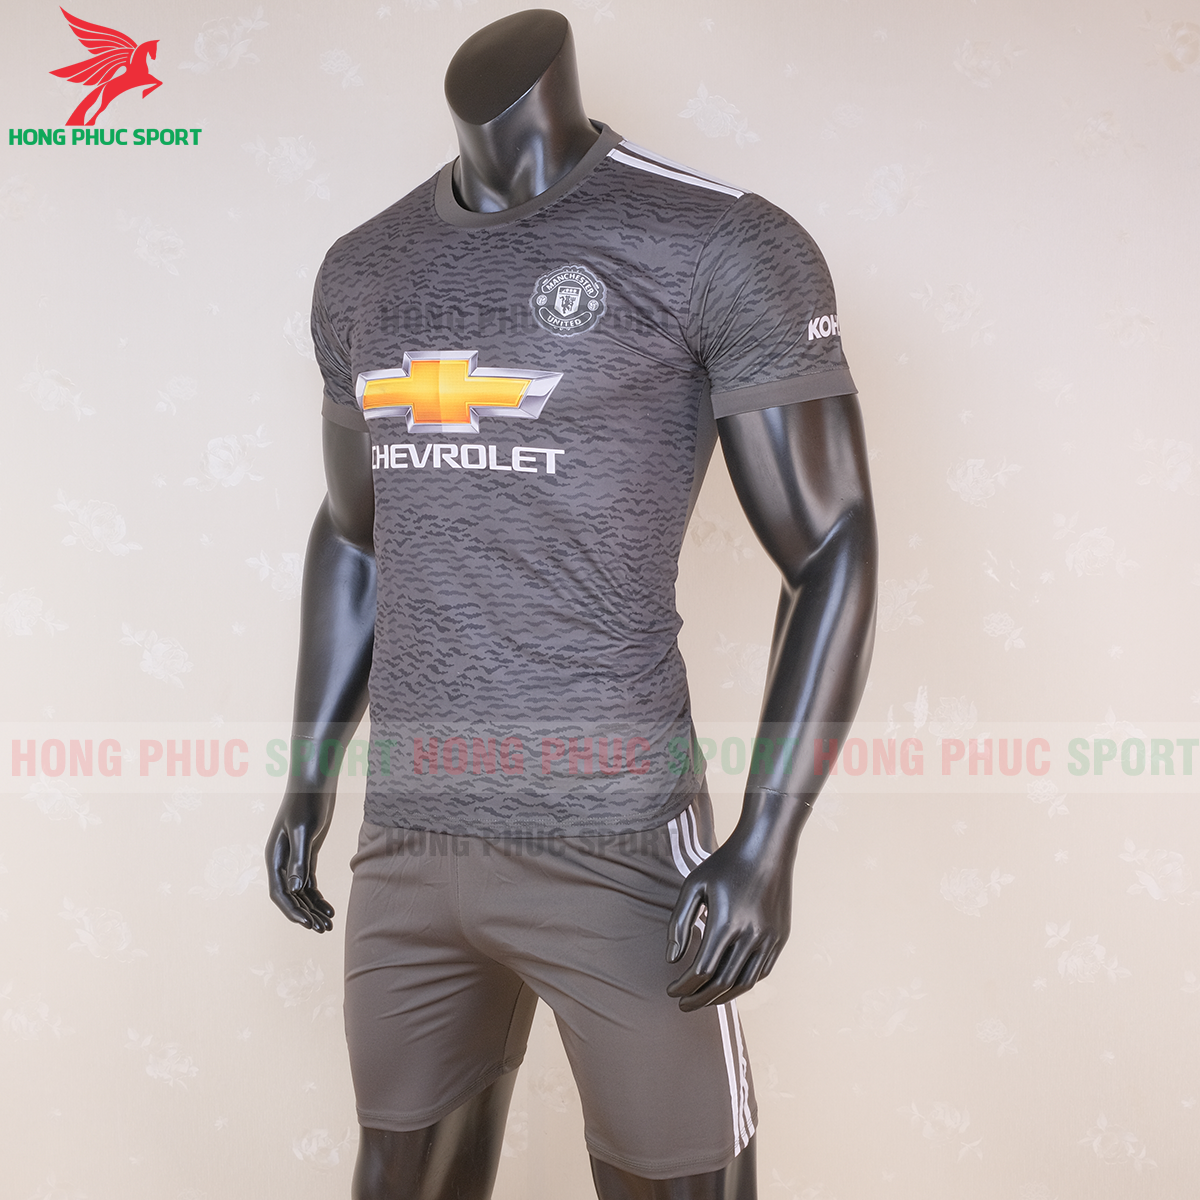 https://cdn.hongphucsport.com/unsafe/s4.shopbay.vn/files/285/ao-bong-da-manchester-united-2020-san-khach-4-5f6c055c1b737.png